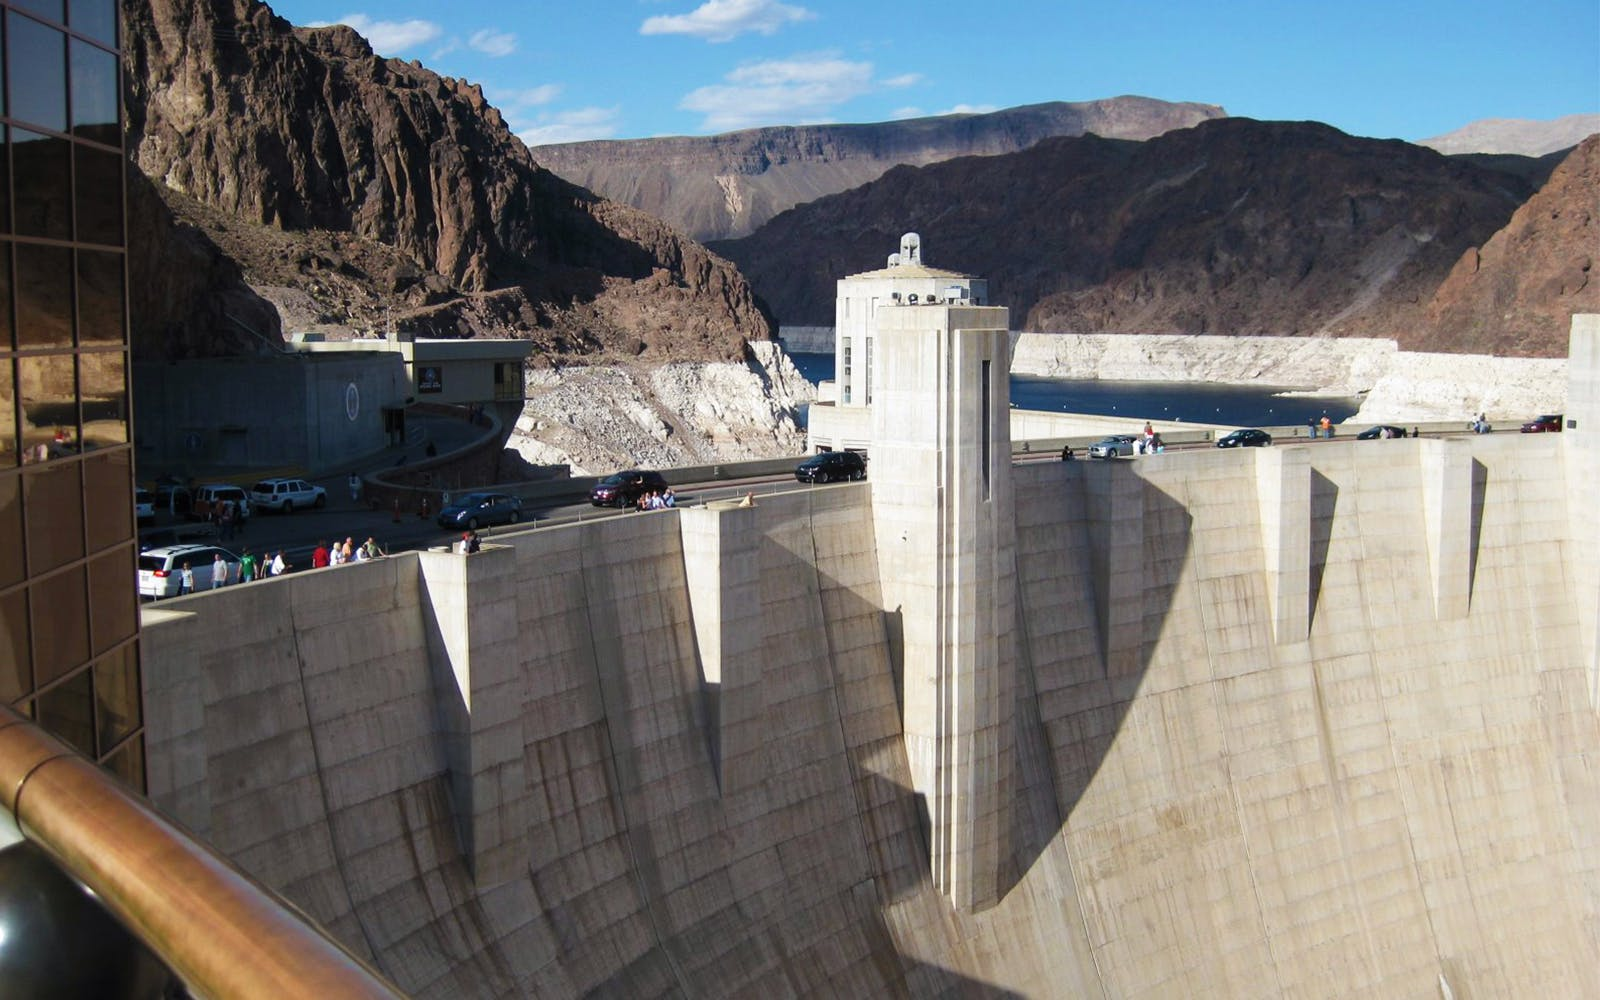 hoover dam deluxe bus & helicopter tour-2